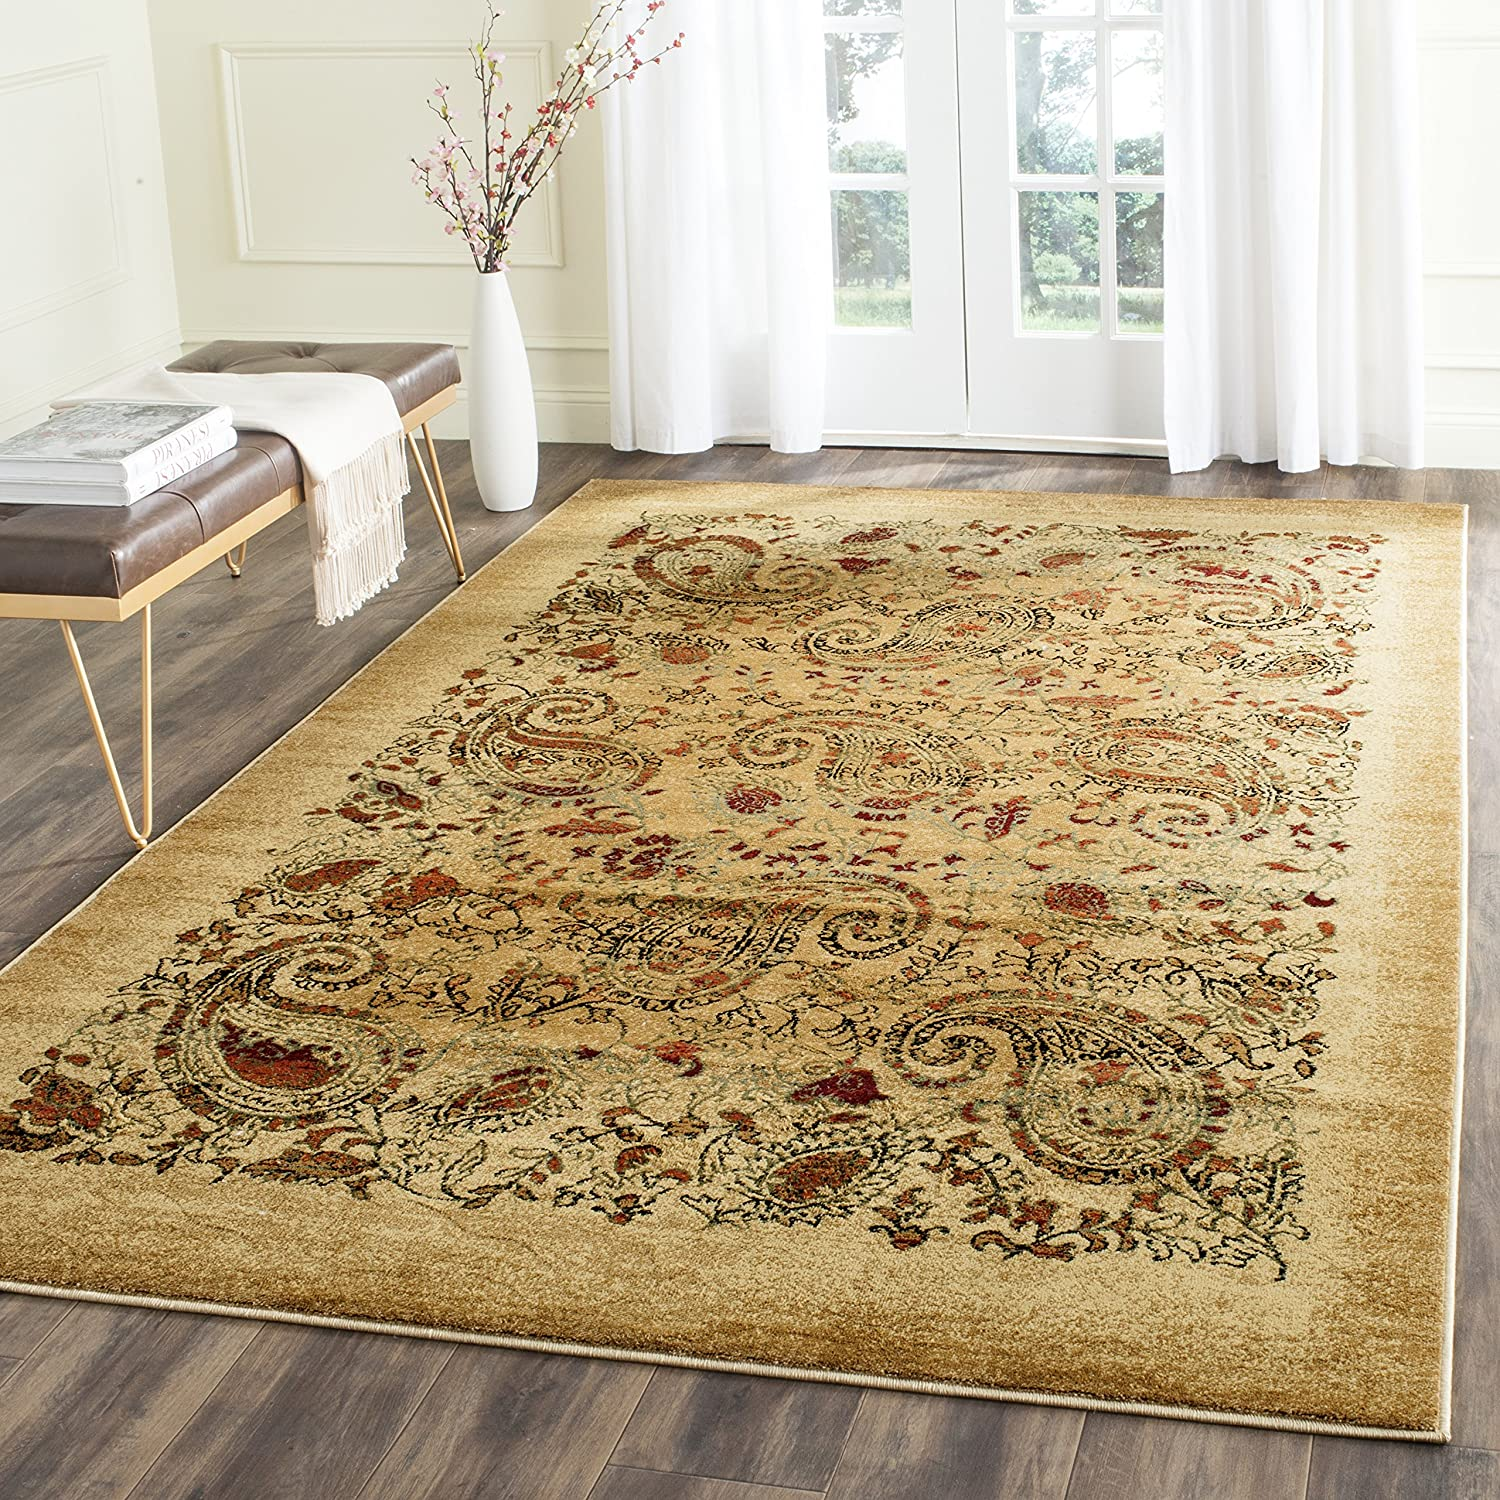 of best wool rugs collection cambridge square rug pinkivory area inside ft x light safavieh carpets